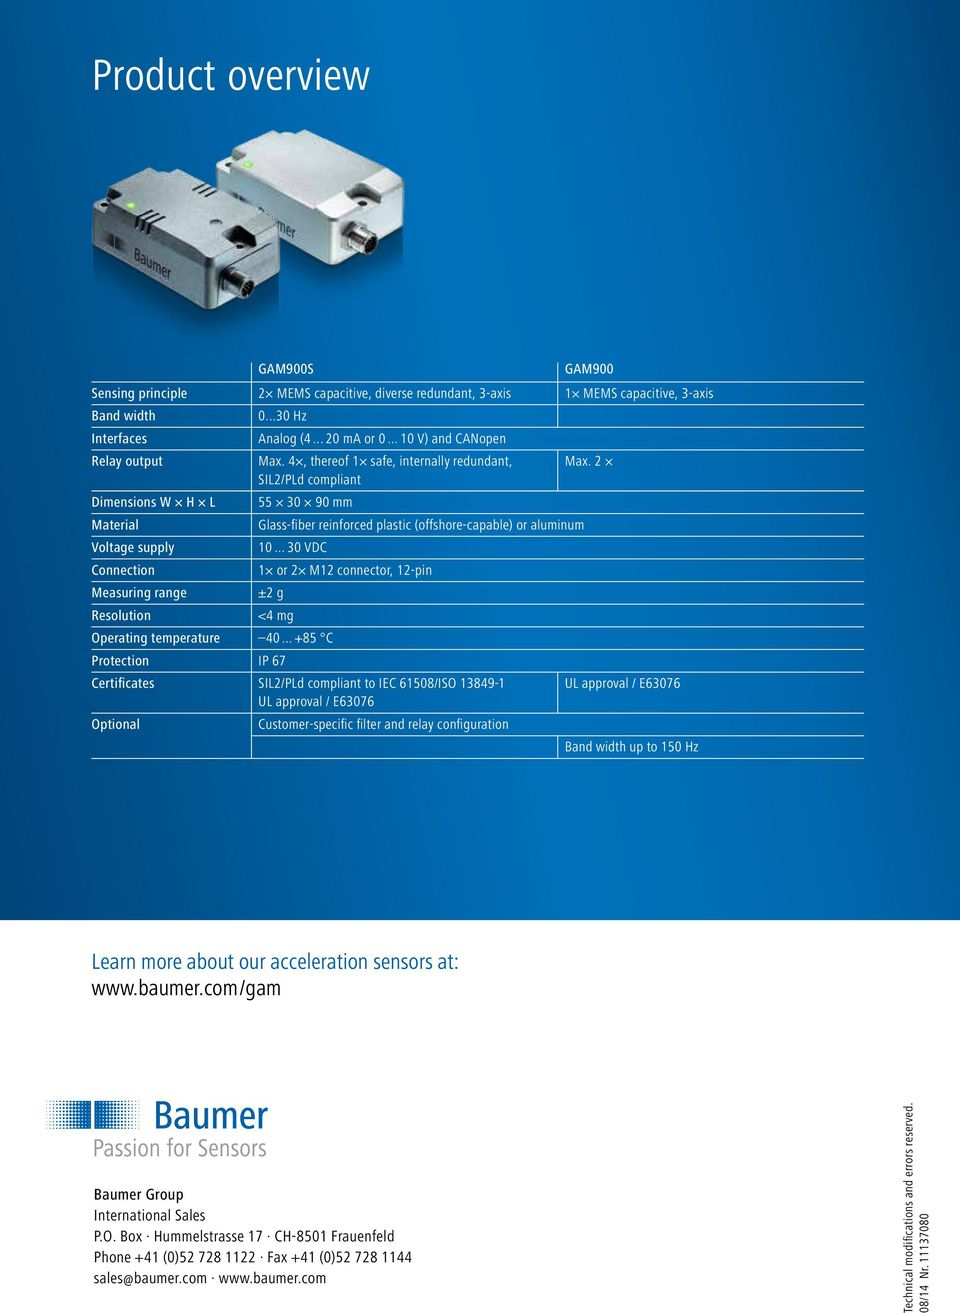 Gam900 Gam900s Acceleration Precisely Measured And Safely Monitored Relays Class 8501 8 Pin Wiring Diagram 2 Sil2 Pld Compliant Dimensions W H L 55 30 90 Mm Material Glass Fiber Reinforced